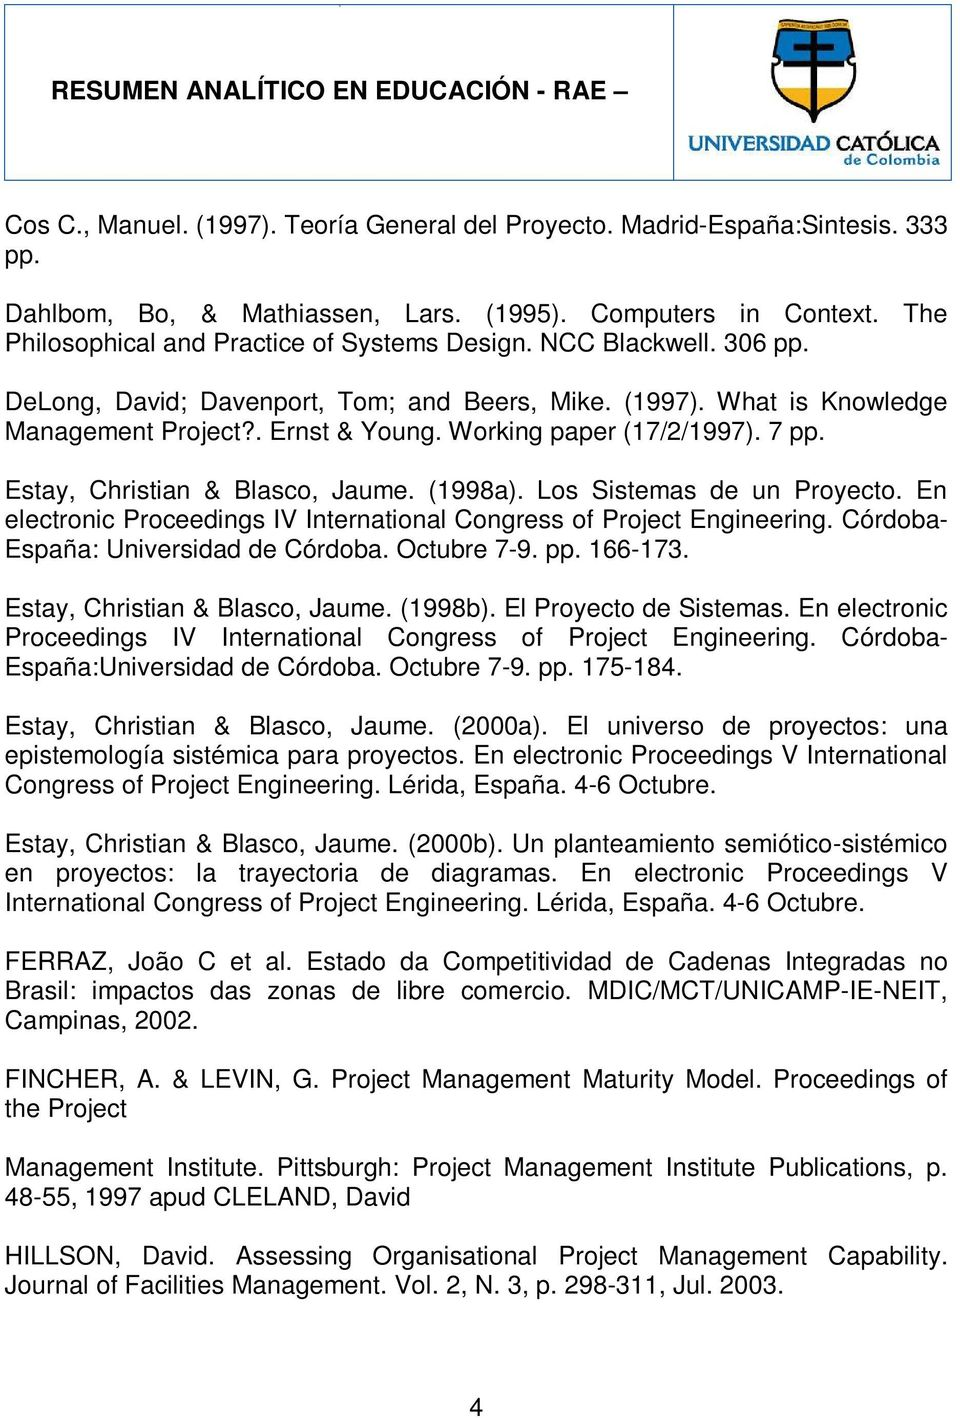 (1998a). Los Sistemas de un Proyecto. En electronic Proceedings IV International Congress of Project Engineering. Córdoba- España: Universidad de Córdoba. Octubre 7-9. pp. 166-173.